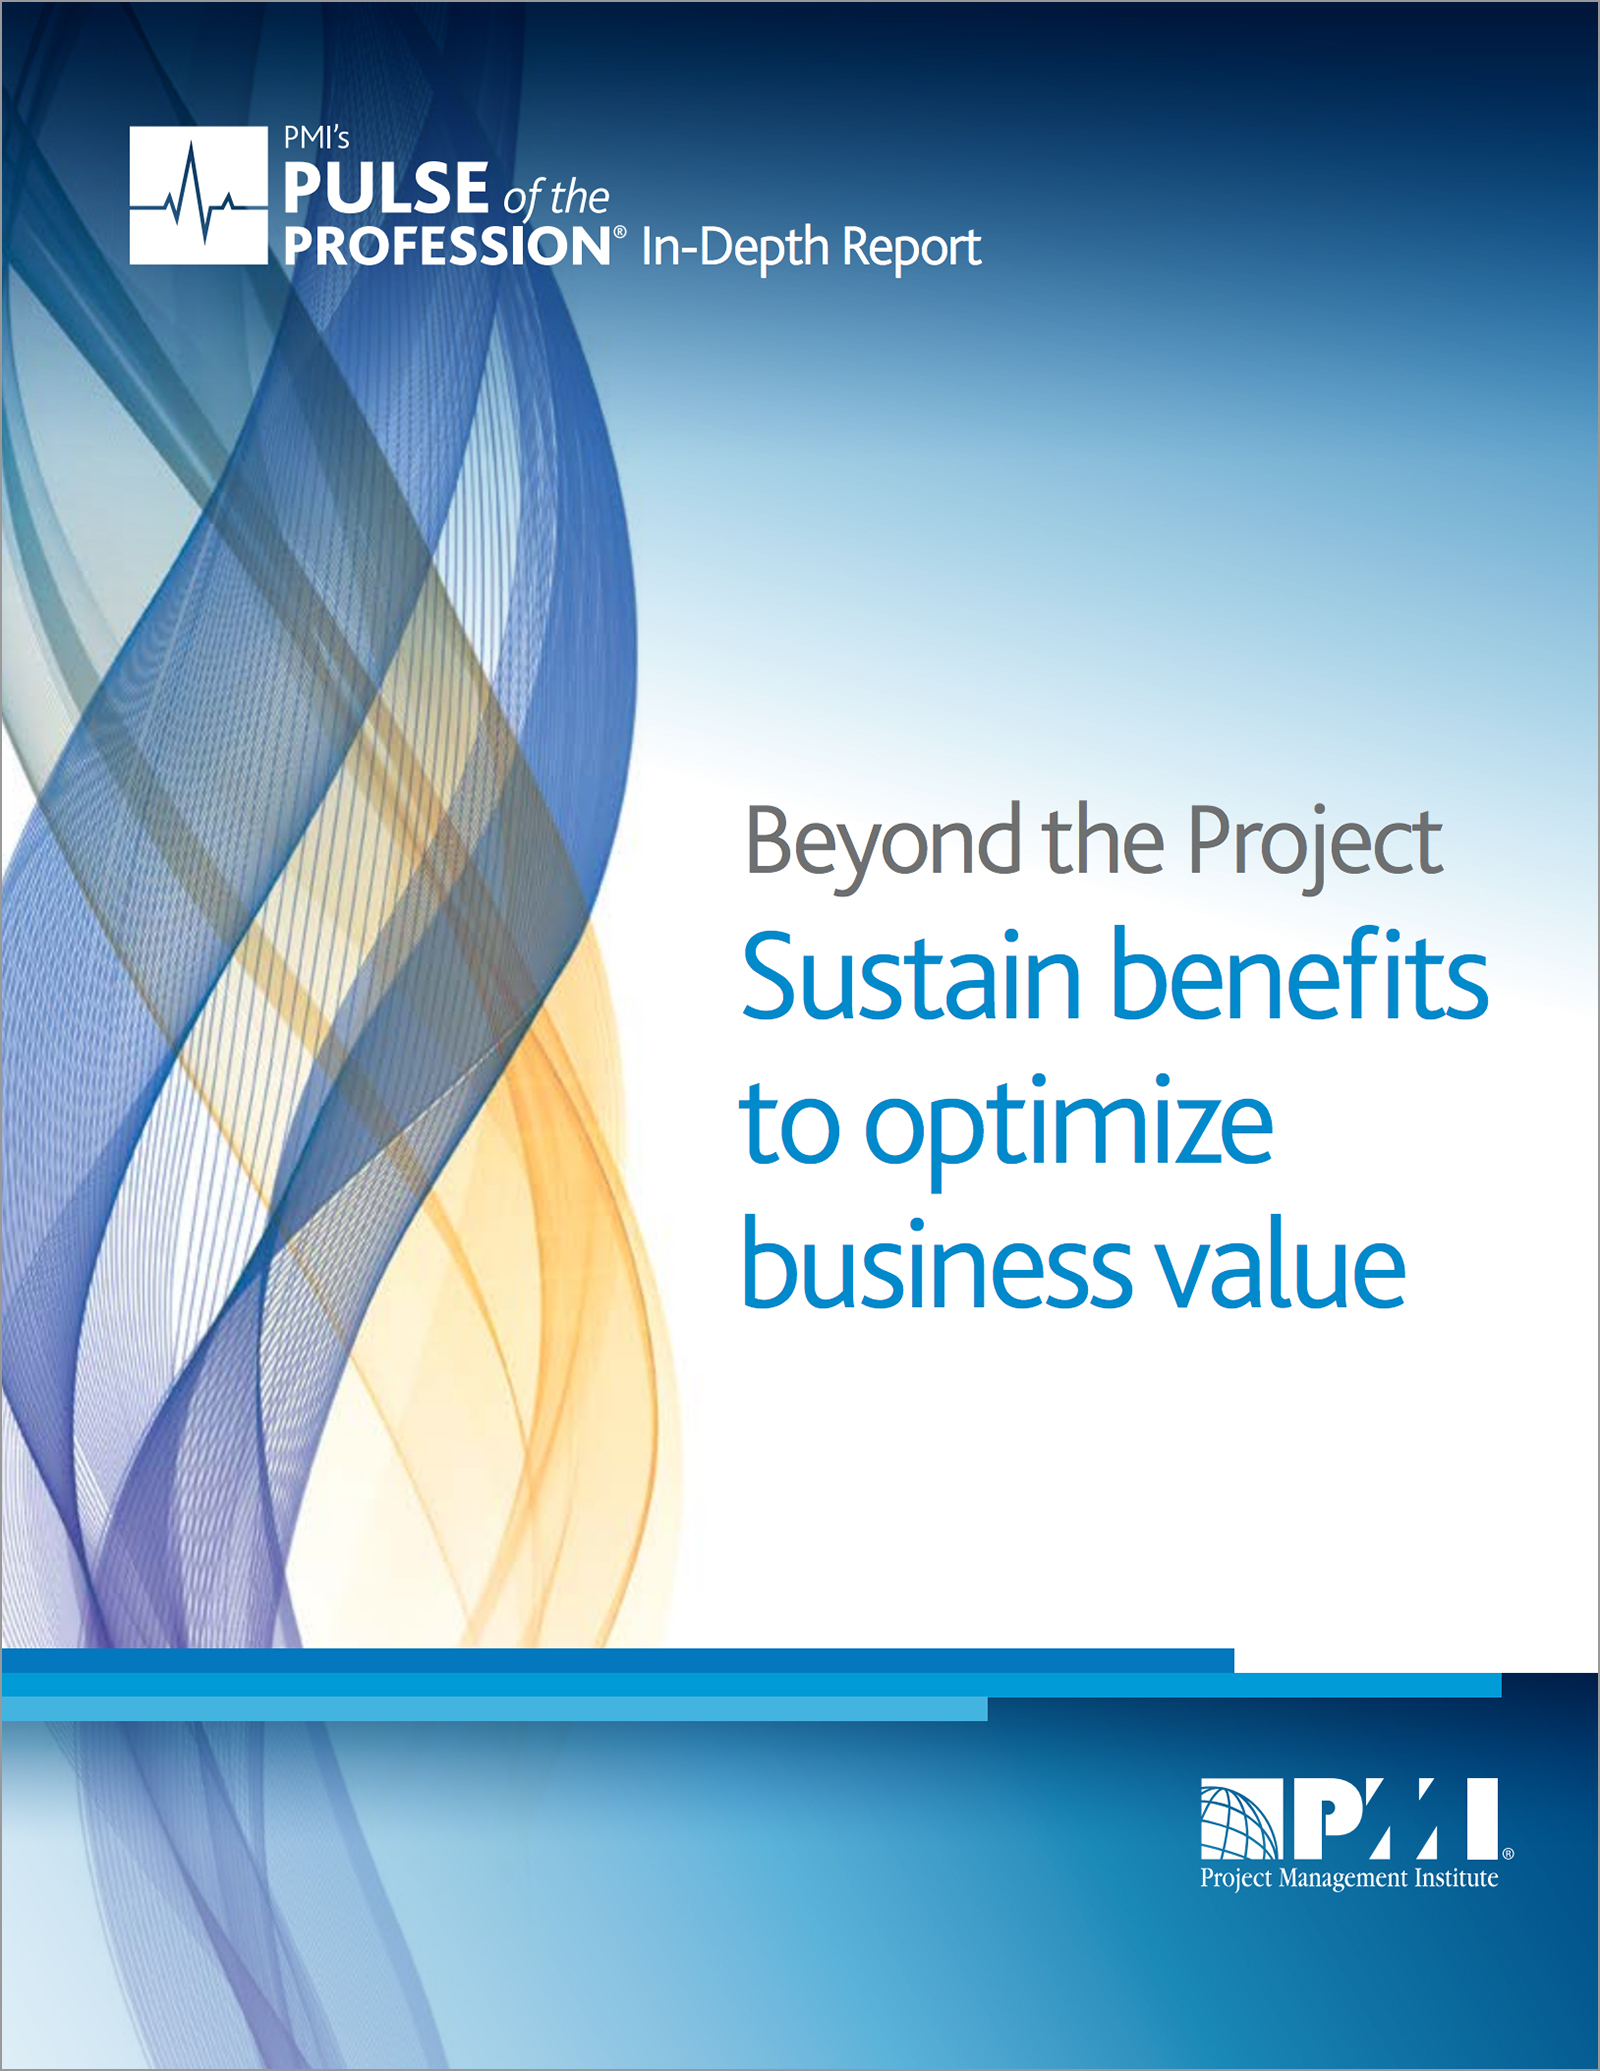 sustain-project-benefits-optimize-value-thumbnail.jpg